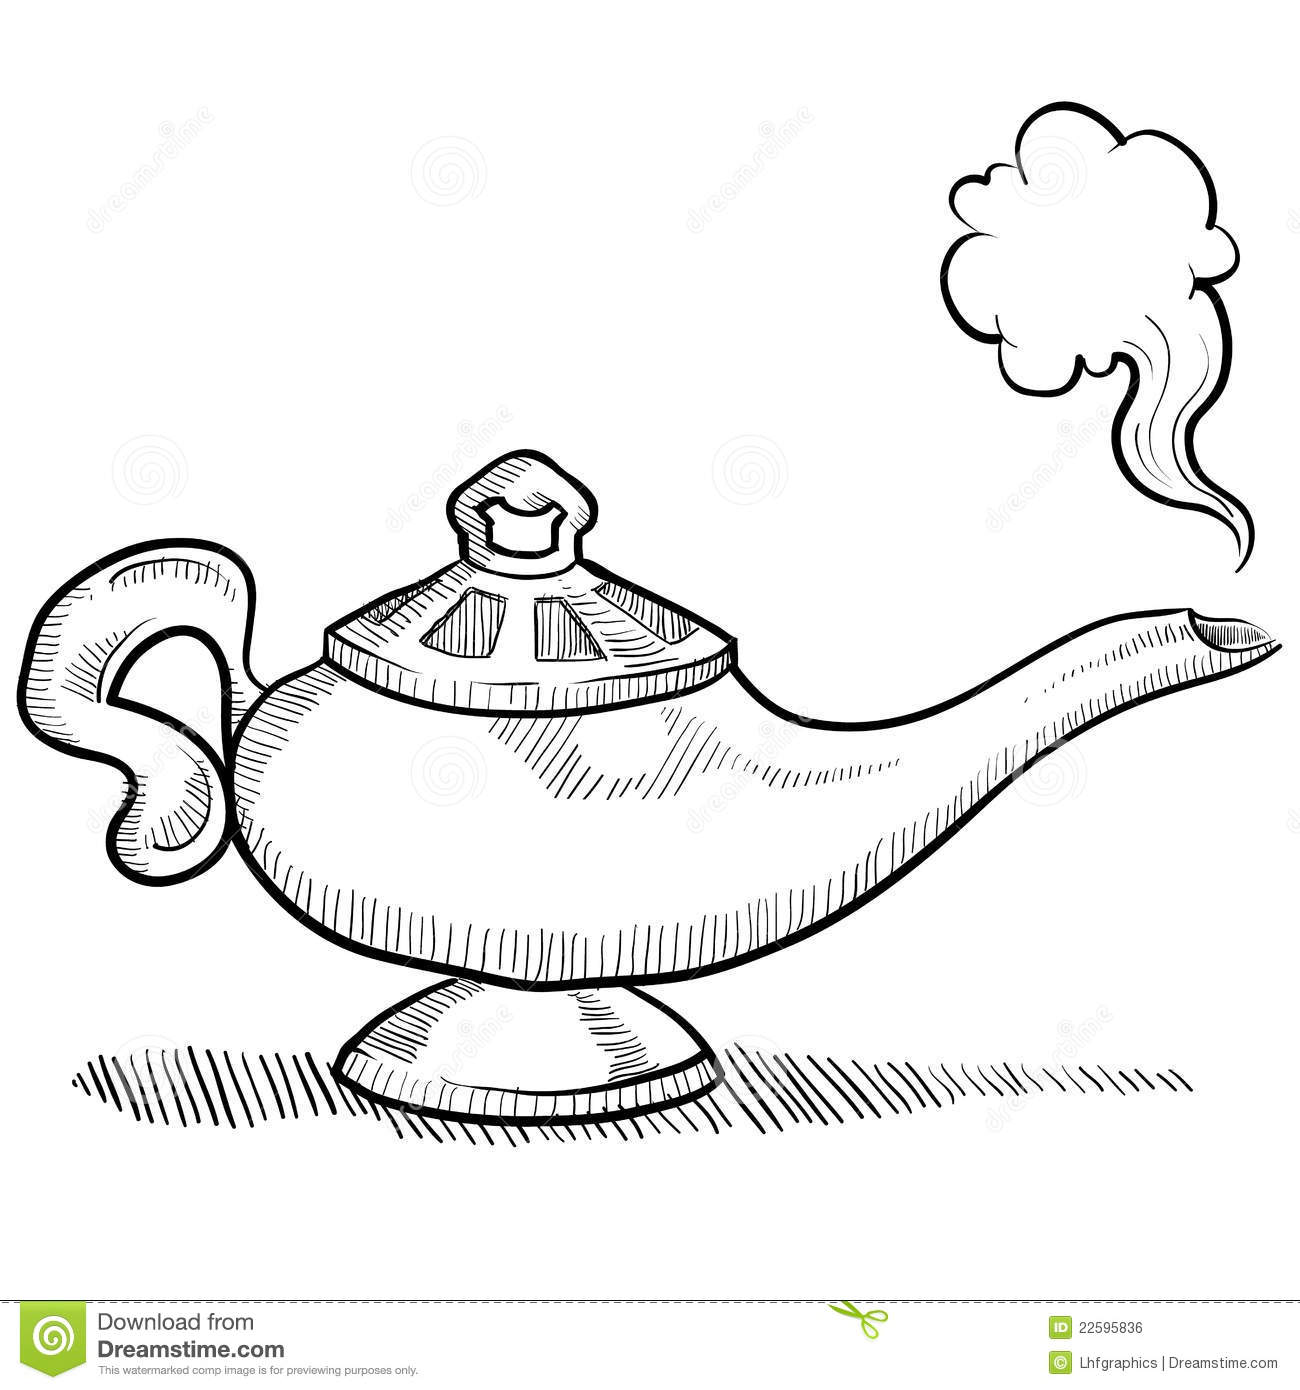 Genie lamp sketch stock vector. Illustration of sketch - 22595836 for Magic Lamp Drawing  284dqh